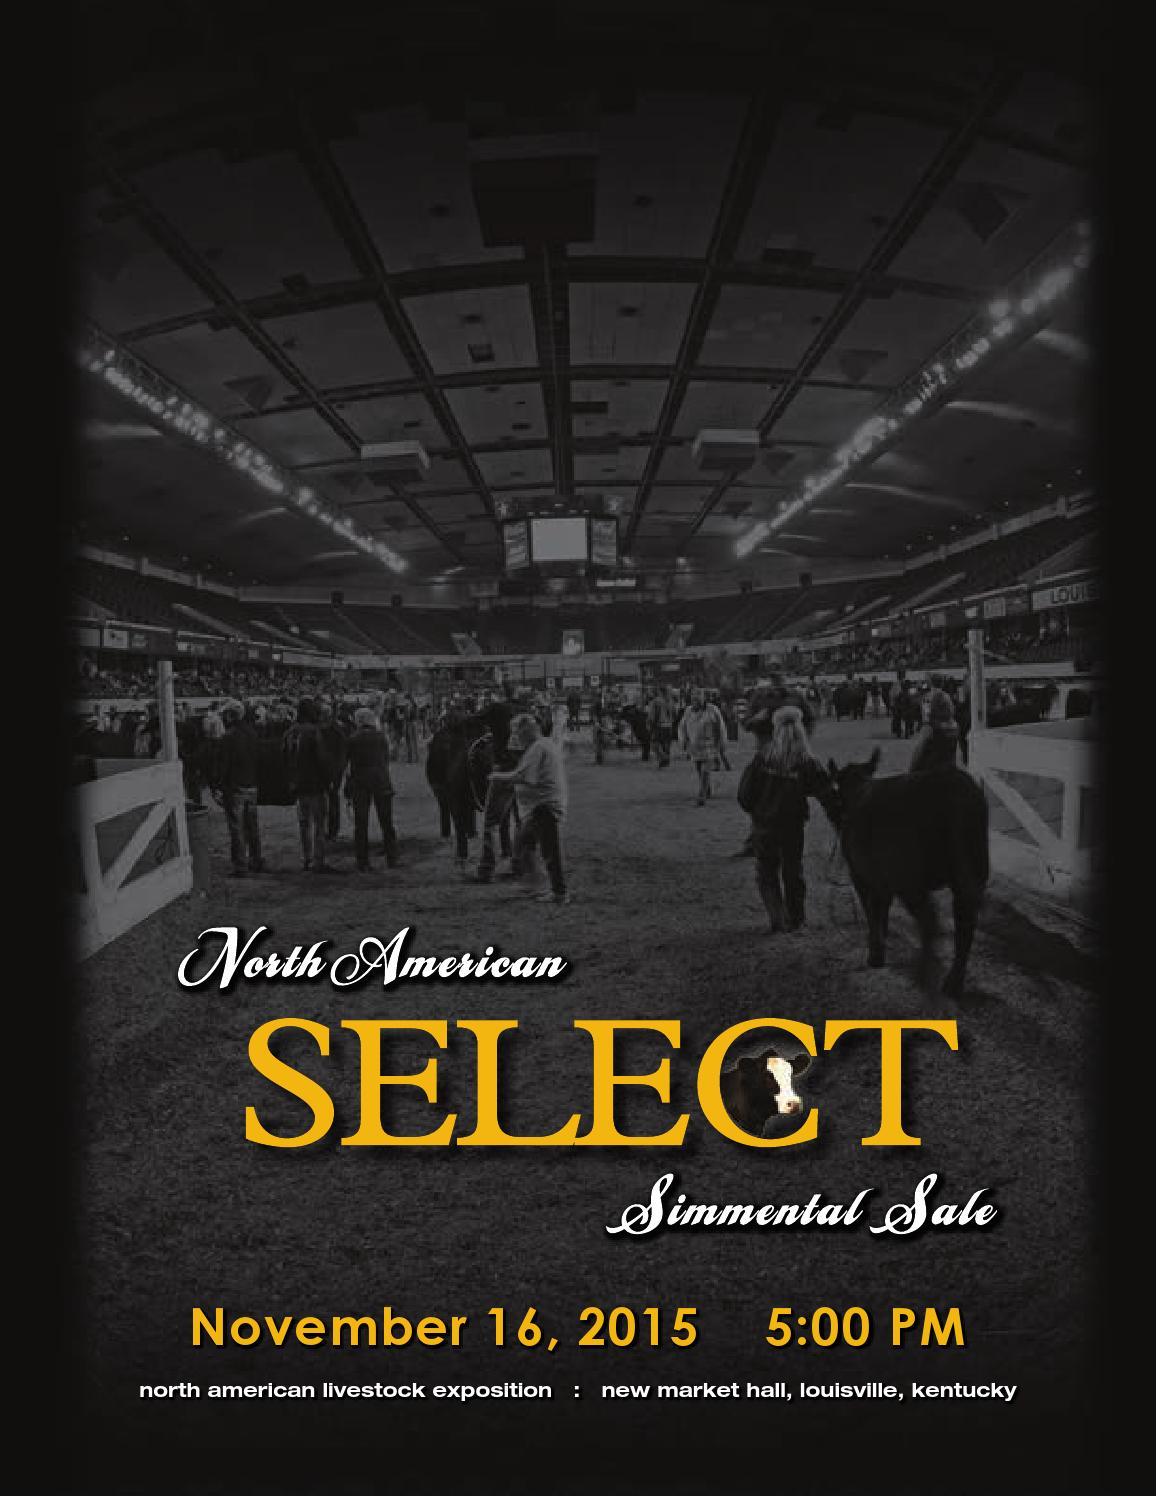 Naile Simmental Select Sale 2015 By Bohrson Marketing